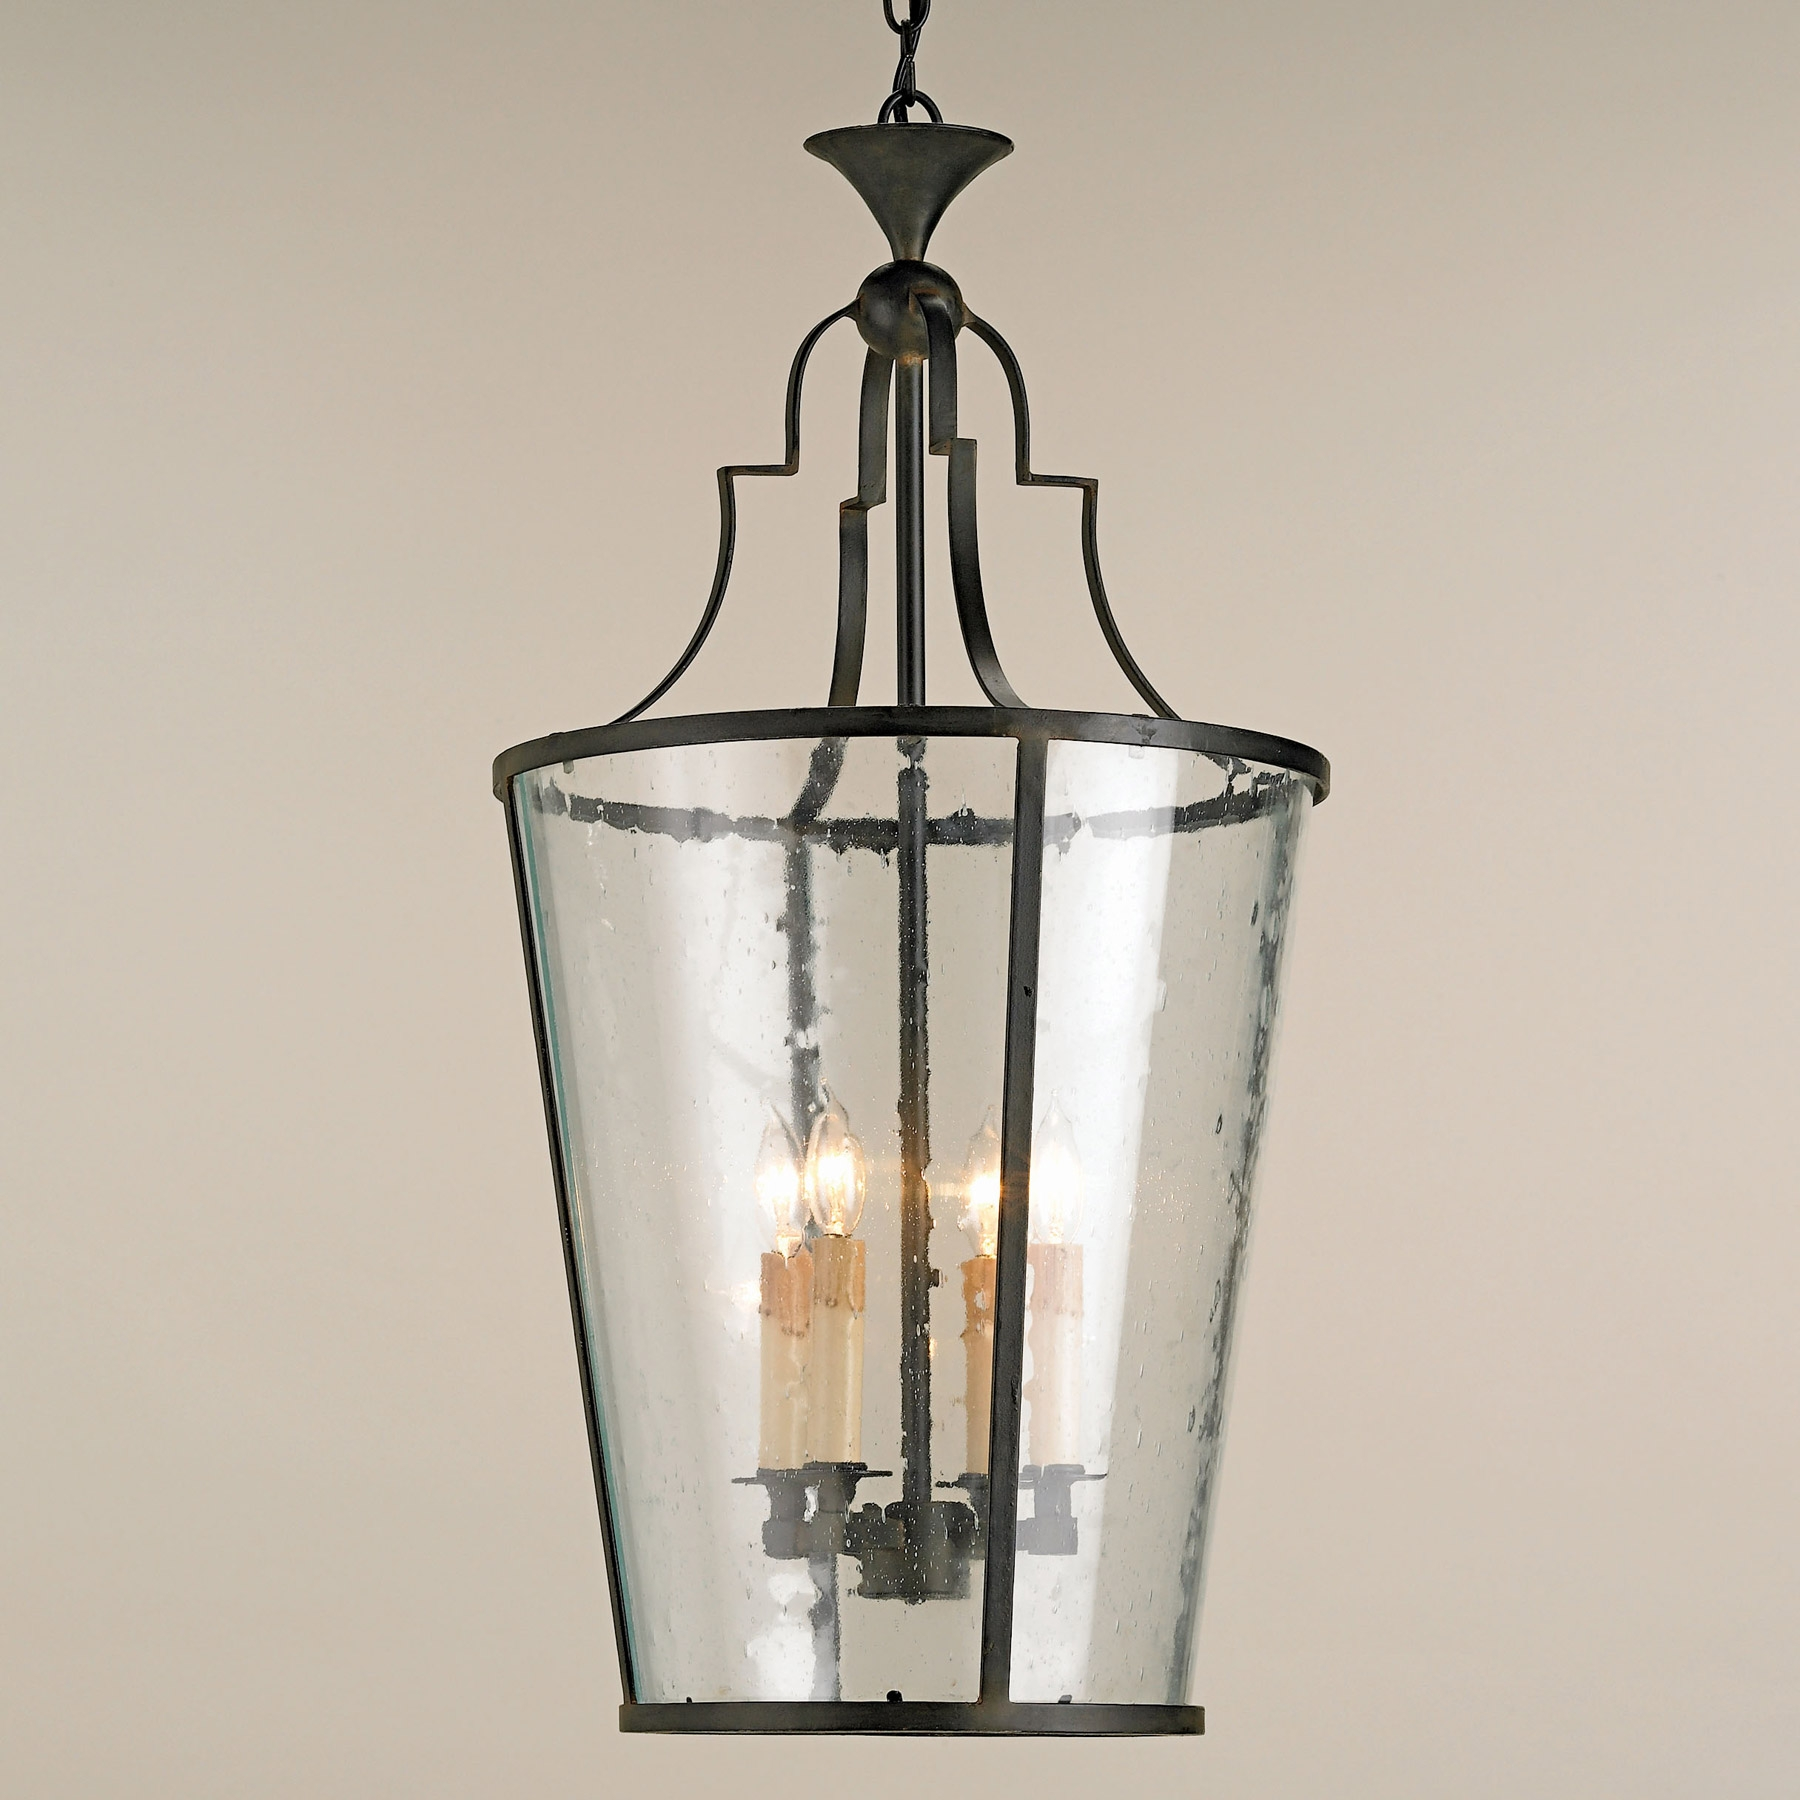 Foyer Lantern Chandelier Stunning Indoor Lanterns Home Ideas With Indoor Lantern Chandelier (#7 of 12)